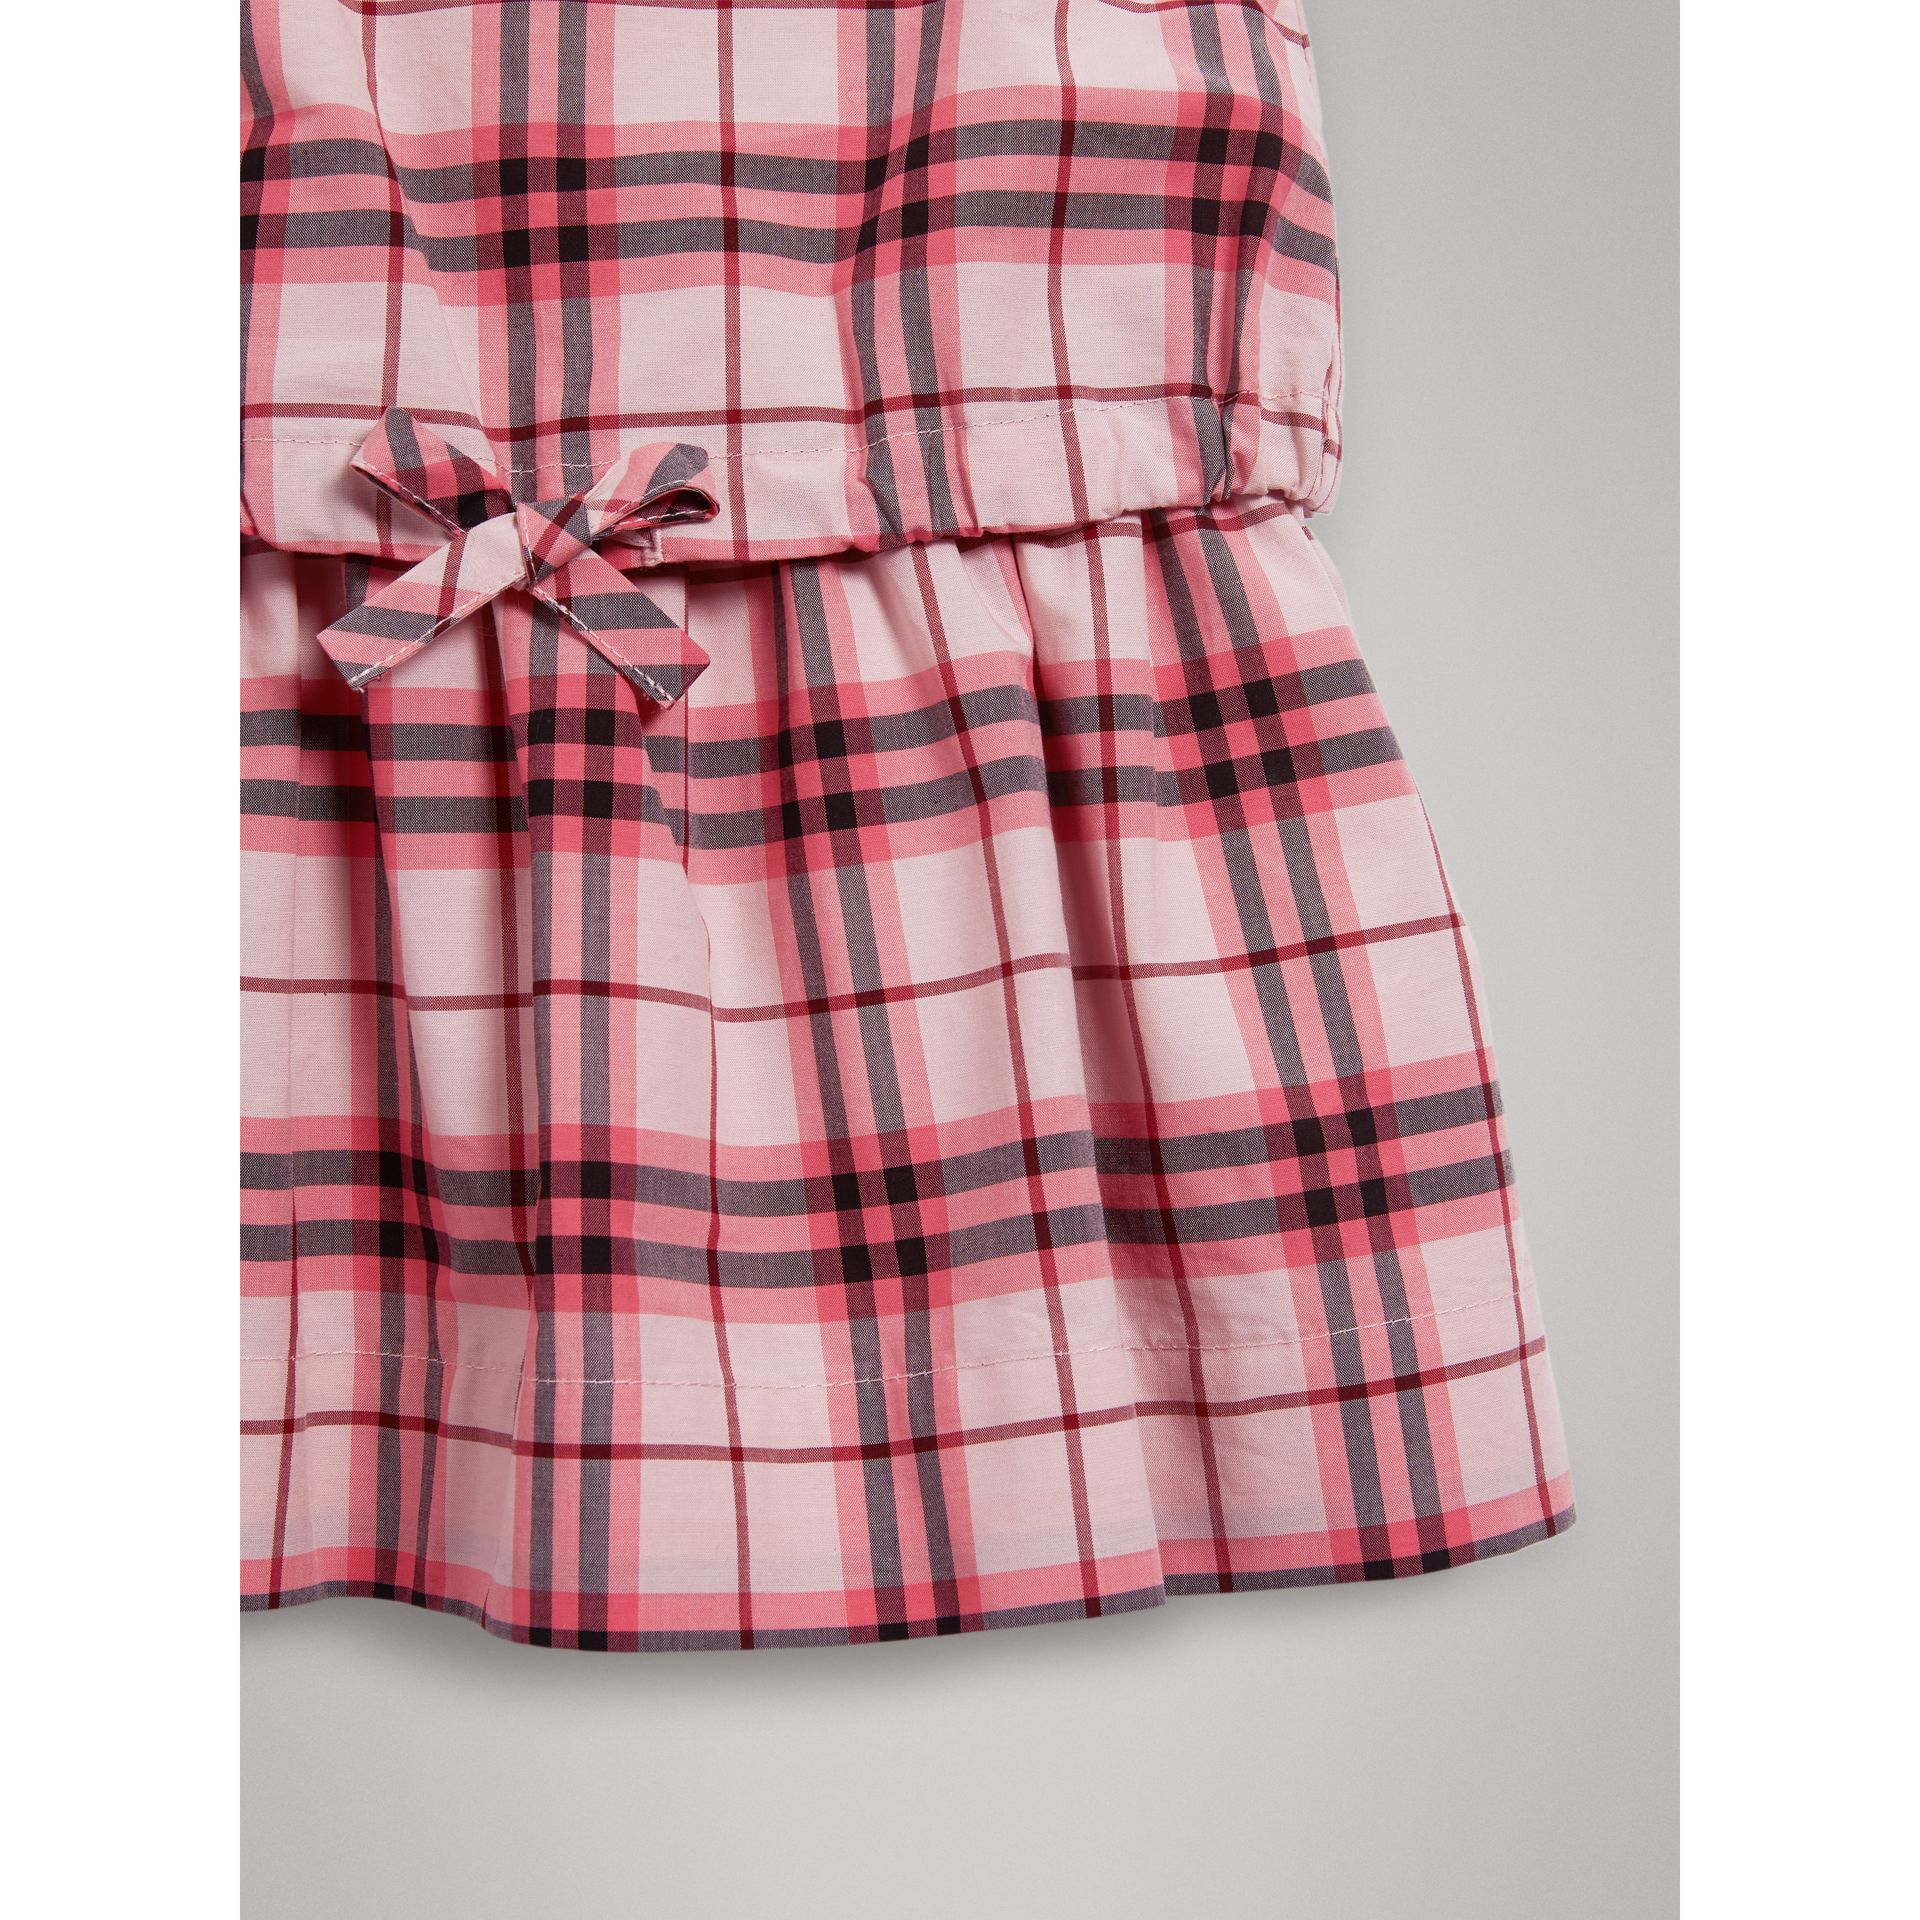 Gathered Check Cotton Dress in Bright Rose | Burberry - gallery image 4